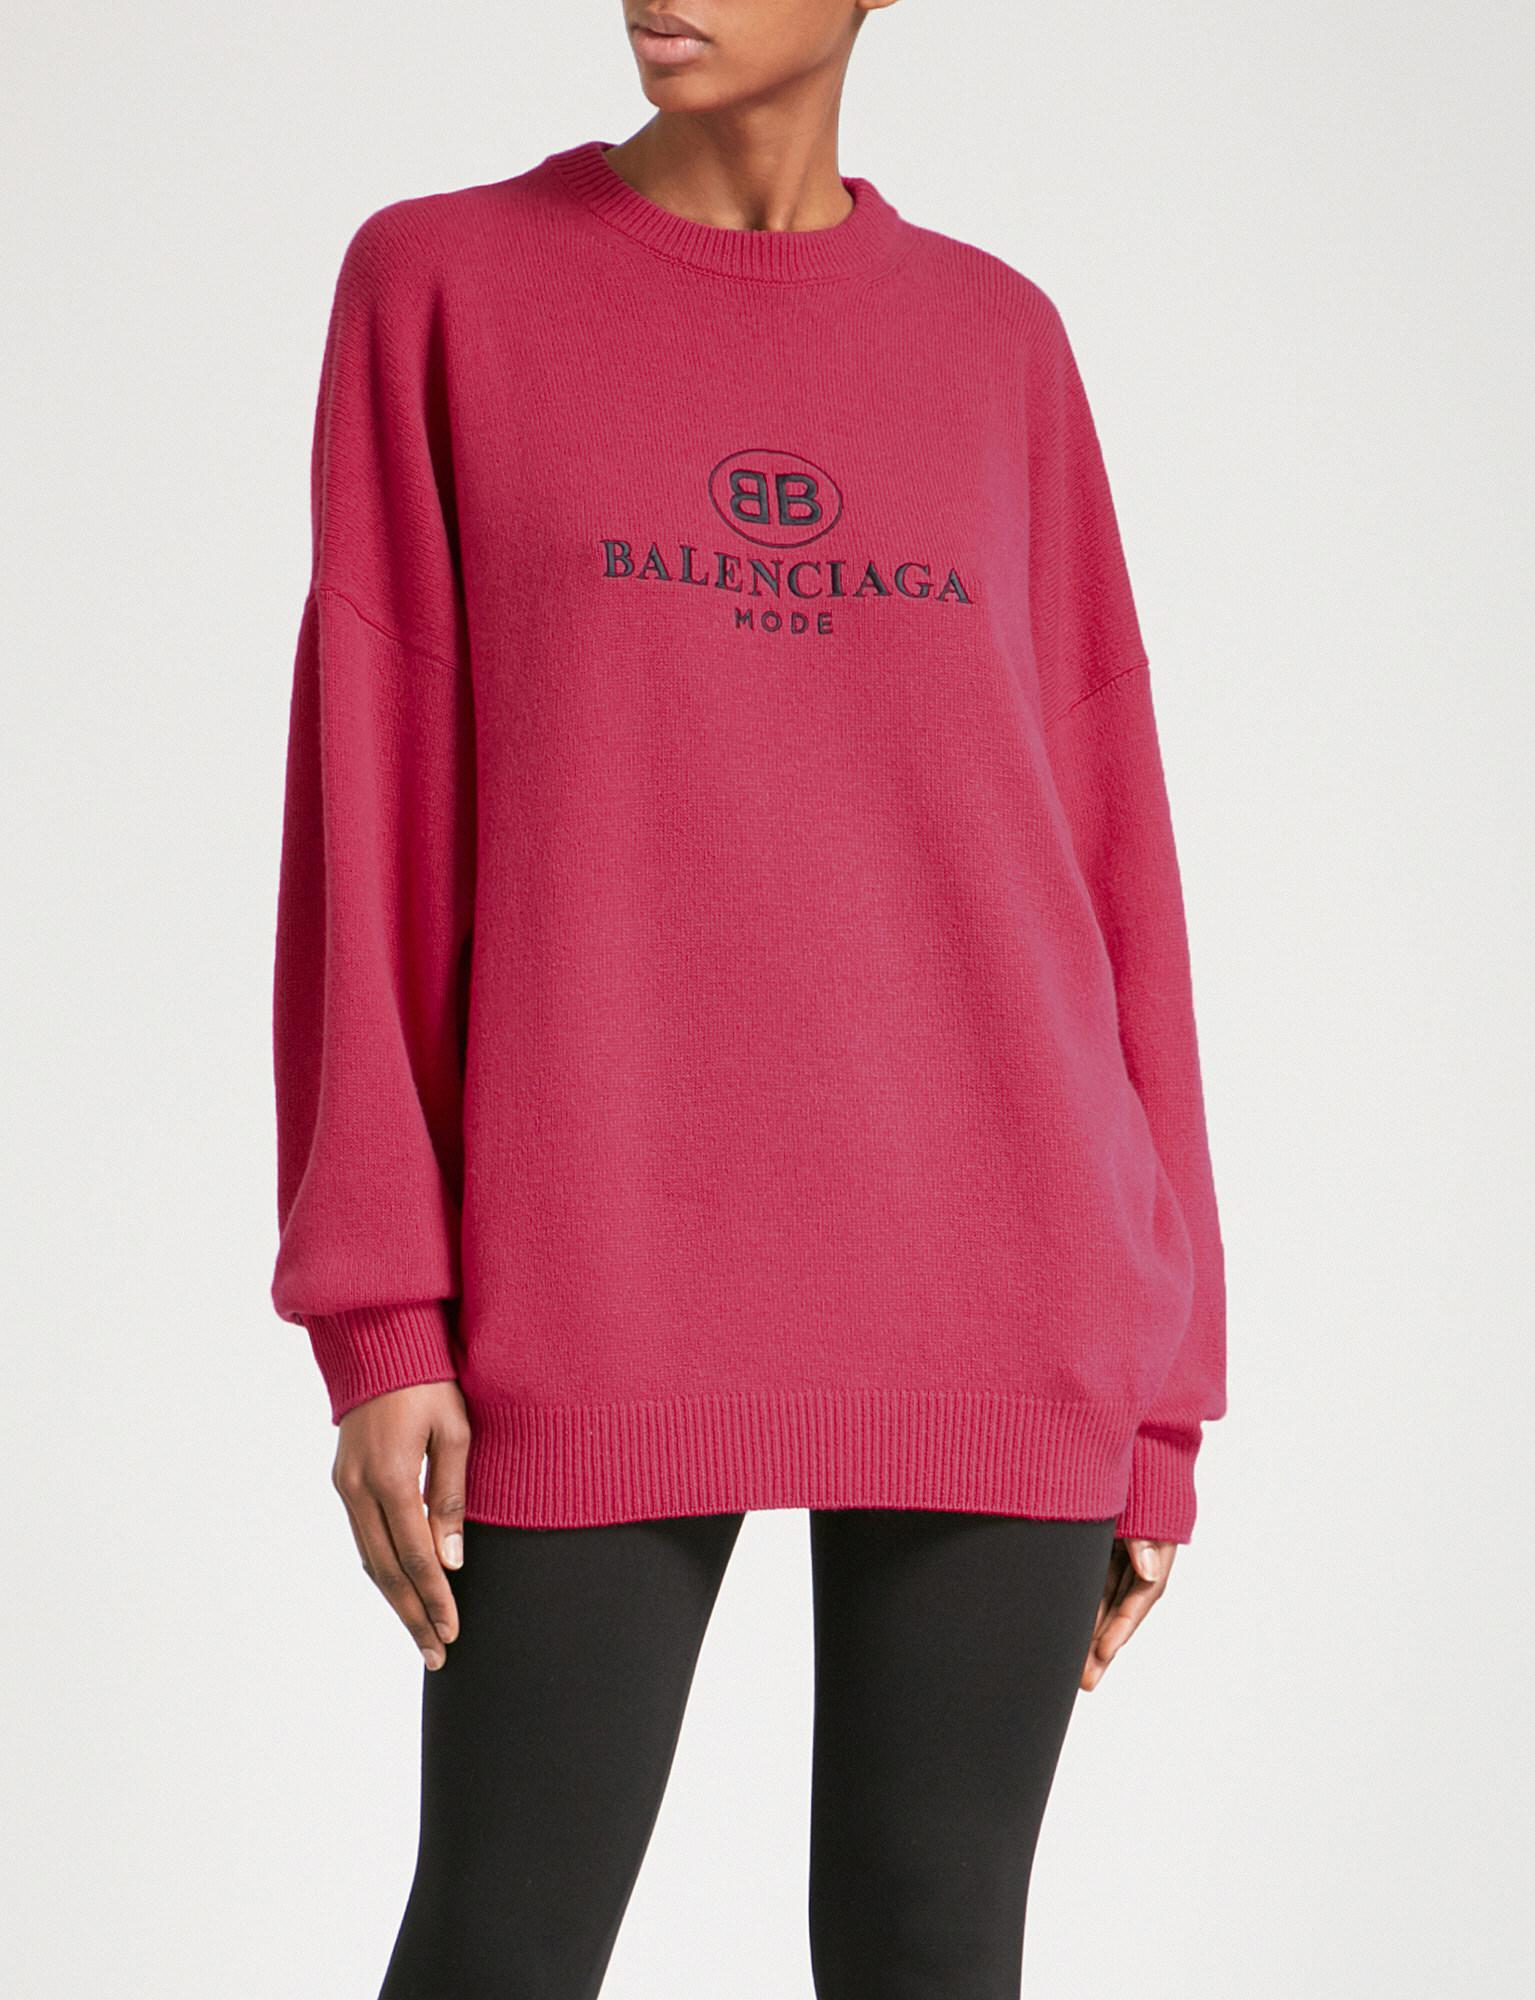 Womens Logo-Embroidered Wool Sweater Balenciaga 2018 Newest Prices Sale Online Cheap Visit New Ga3FD